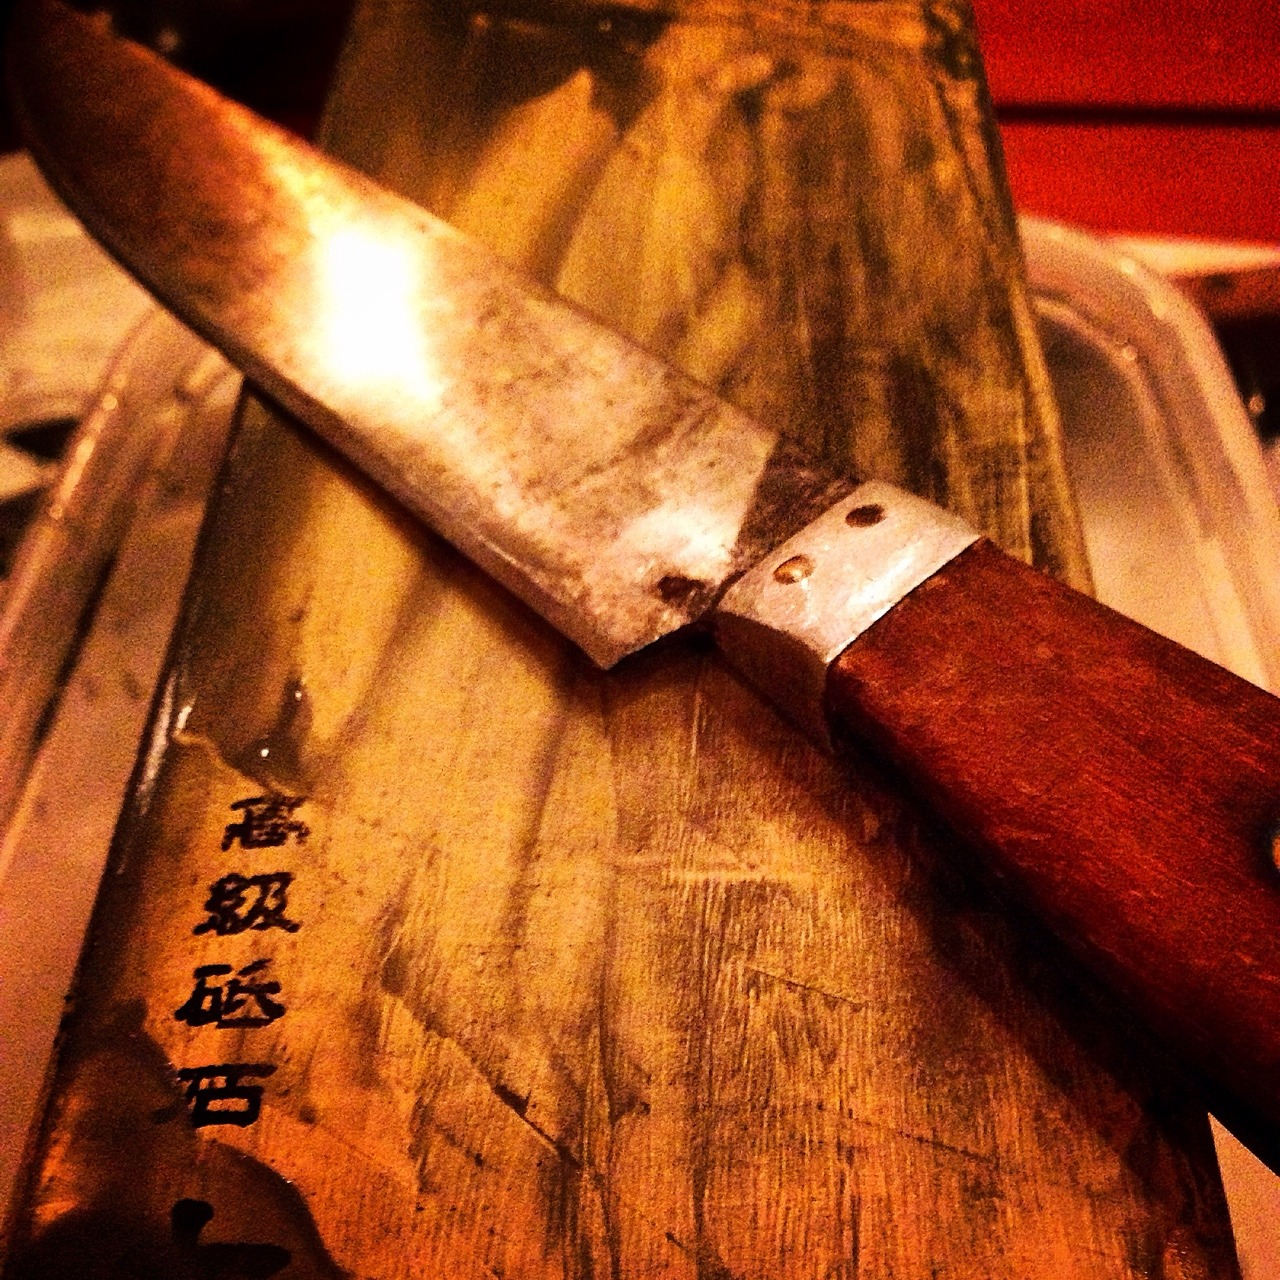 Long overdue sharpening of our eclectic collection of kitchen knives, cleavers and shears on a Japanese whetstone.